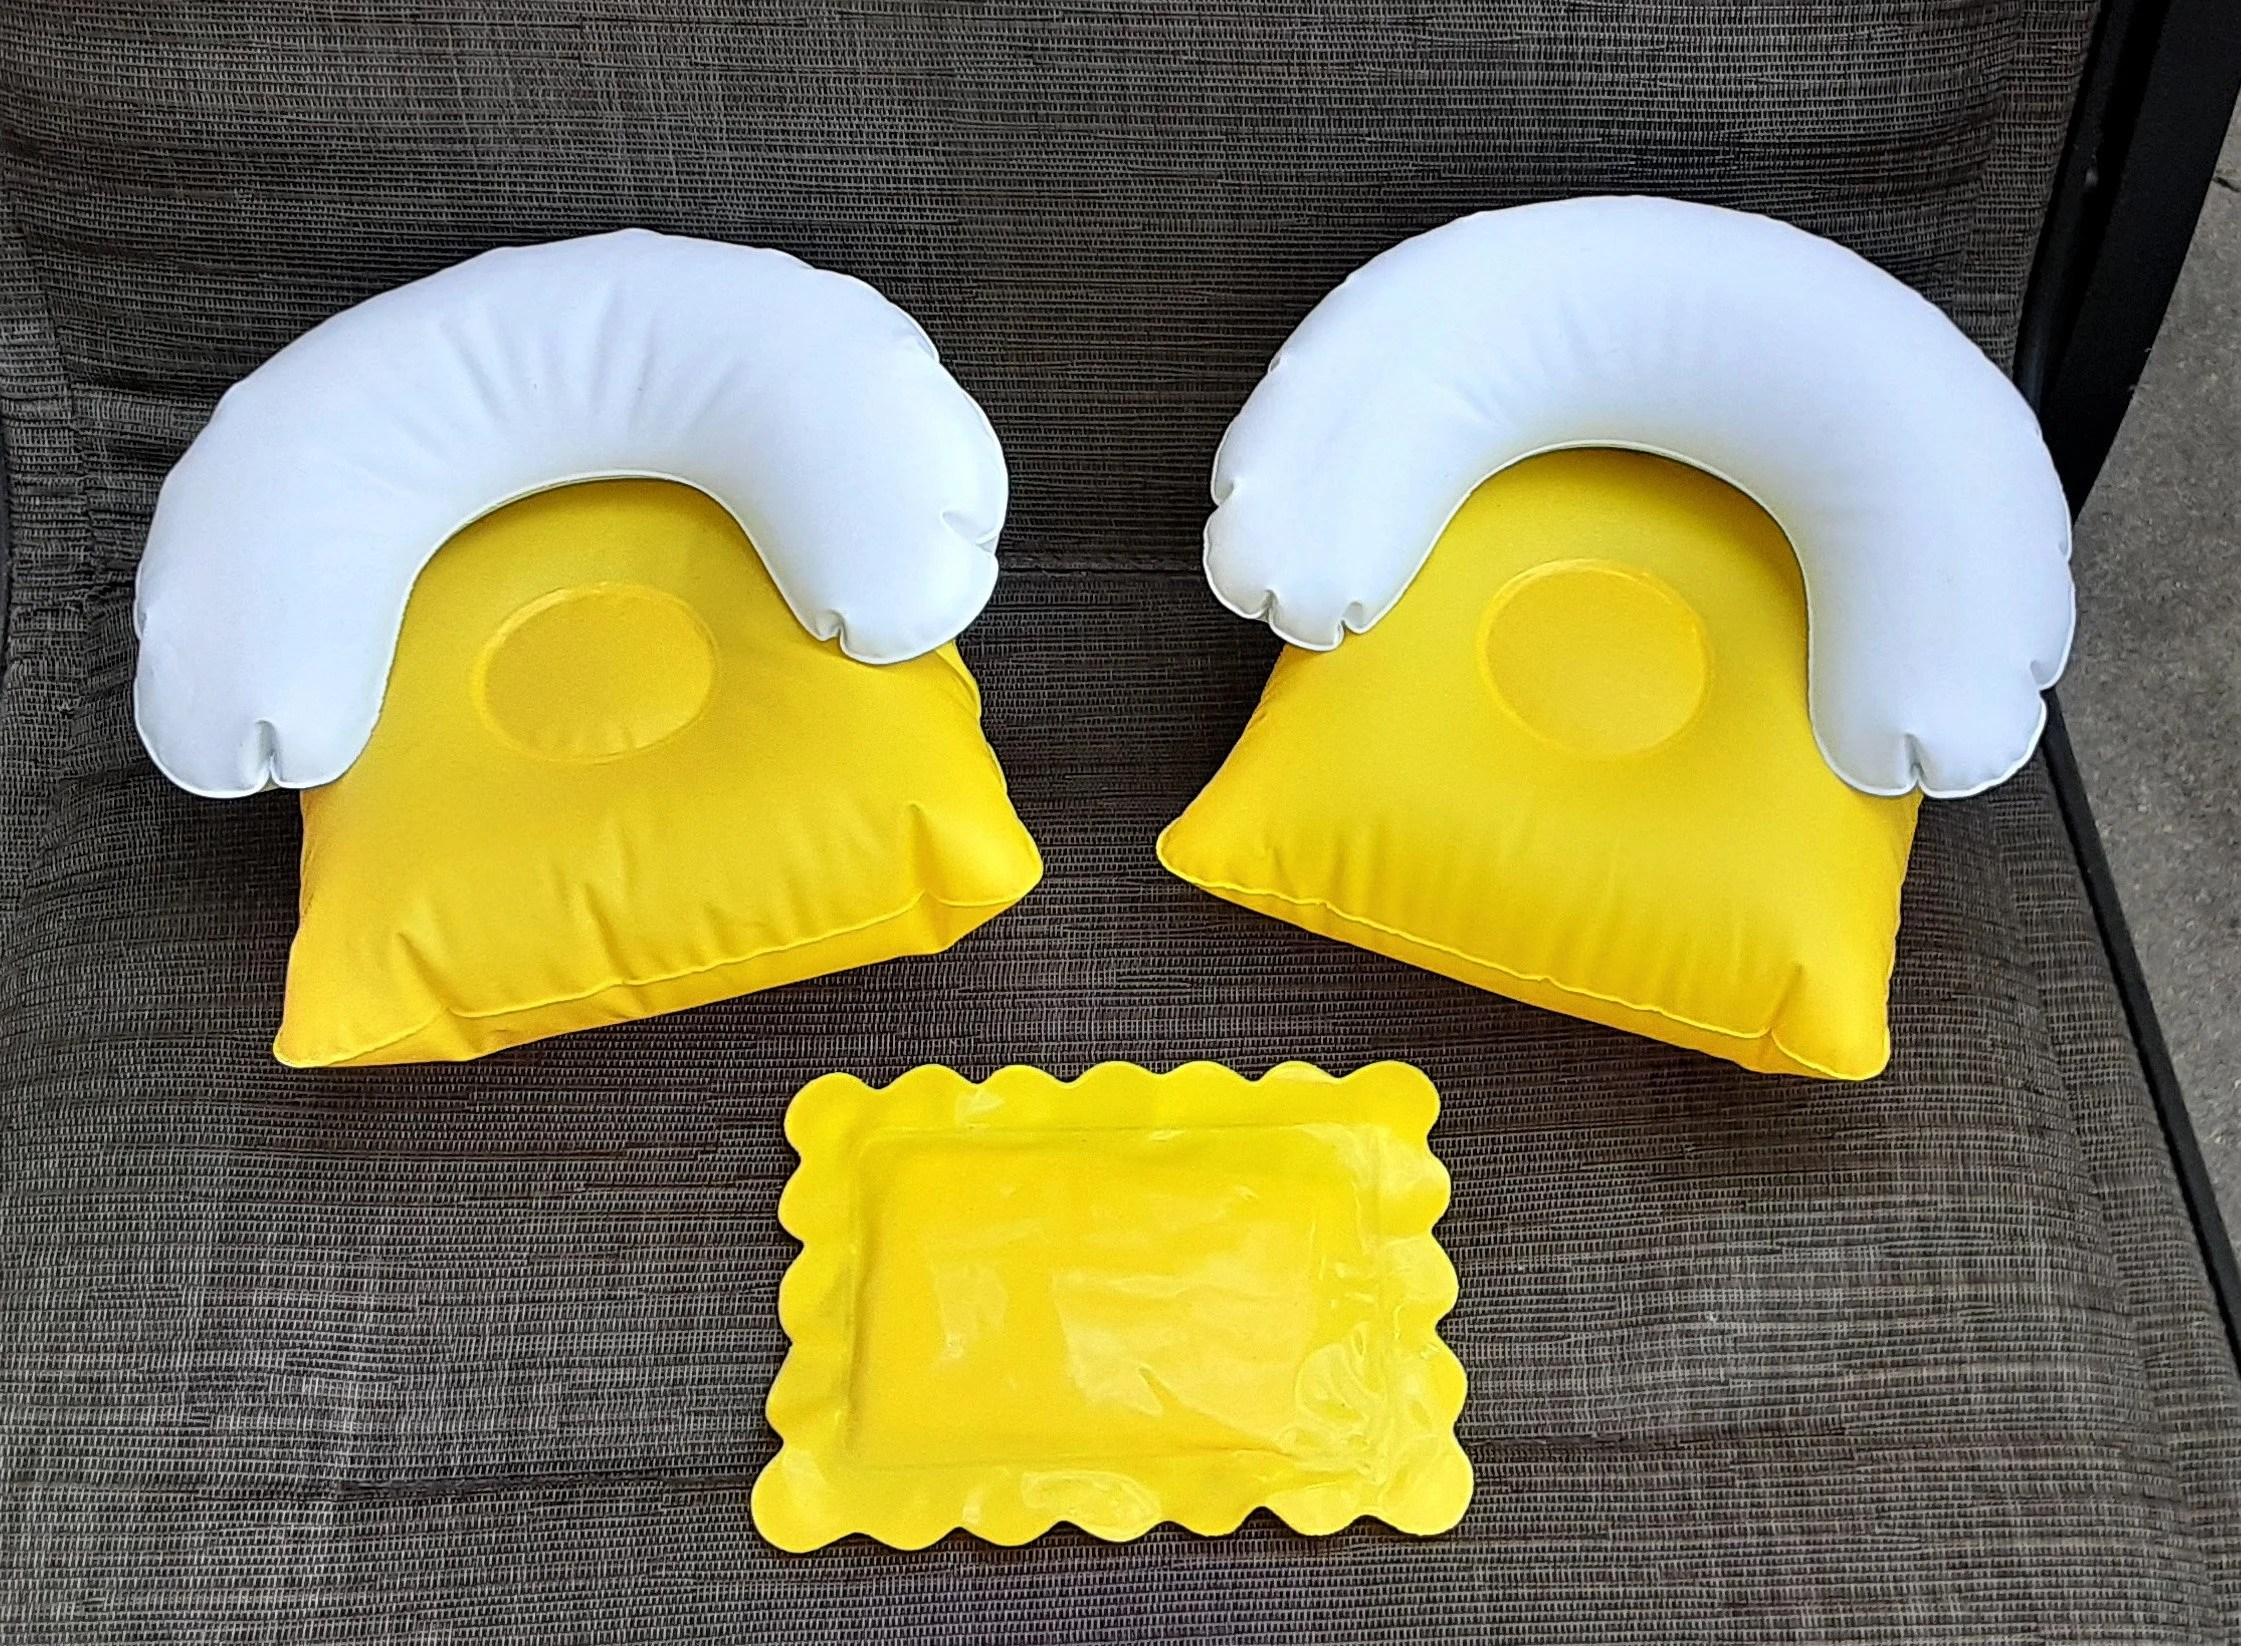 inflatable pillow etsy